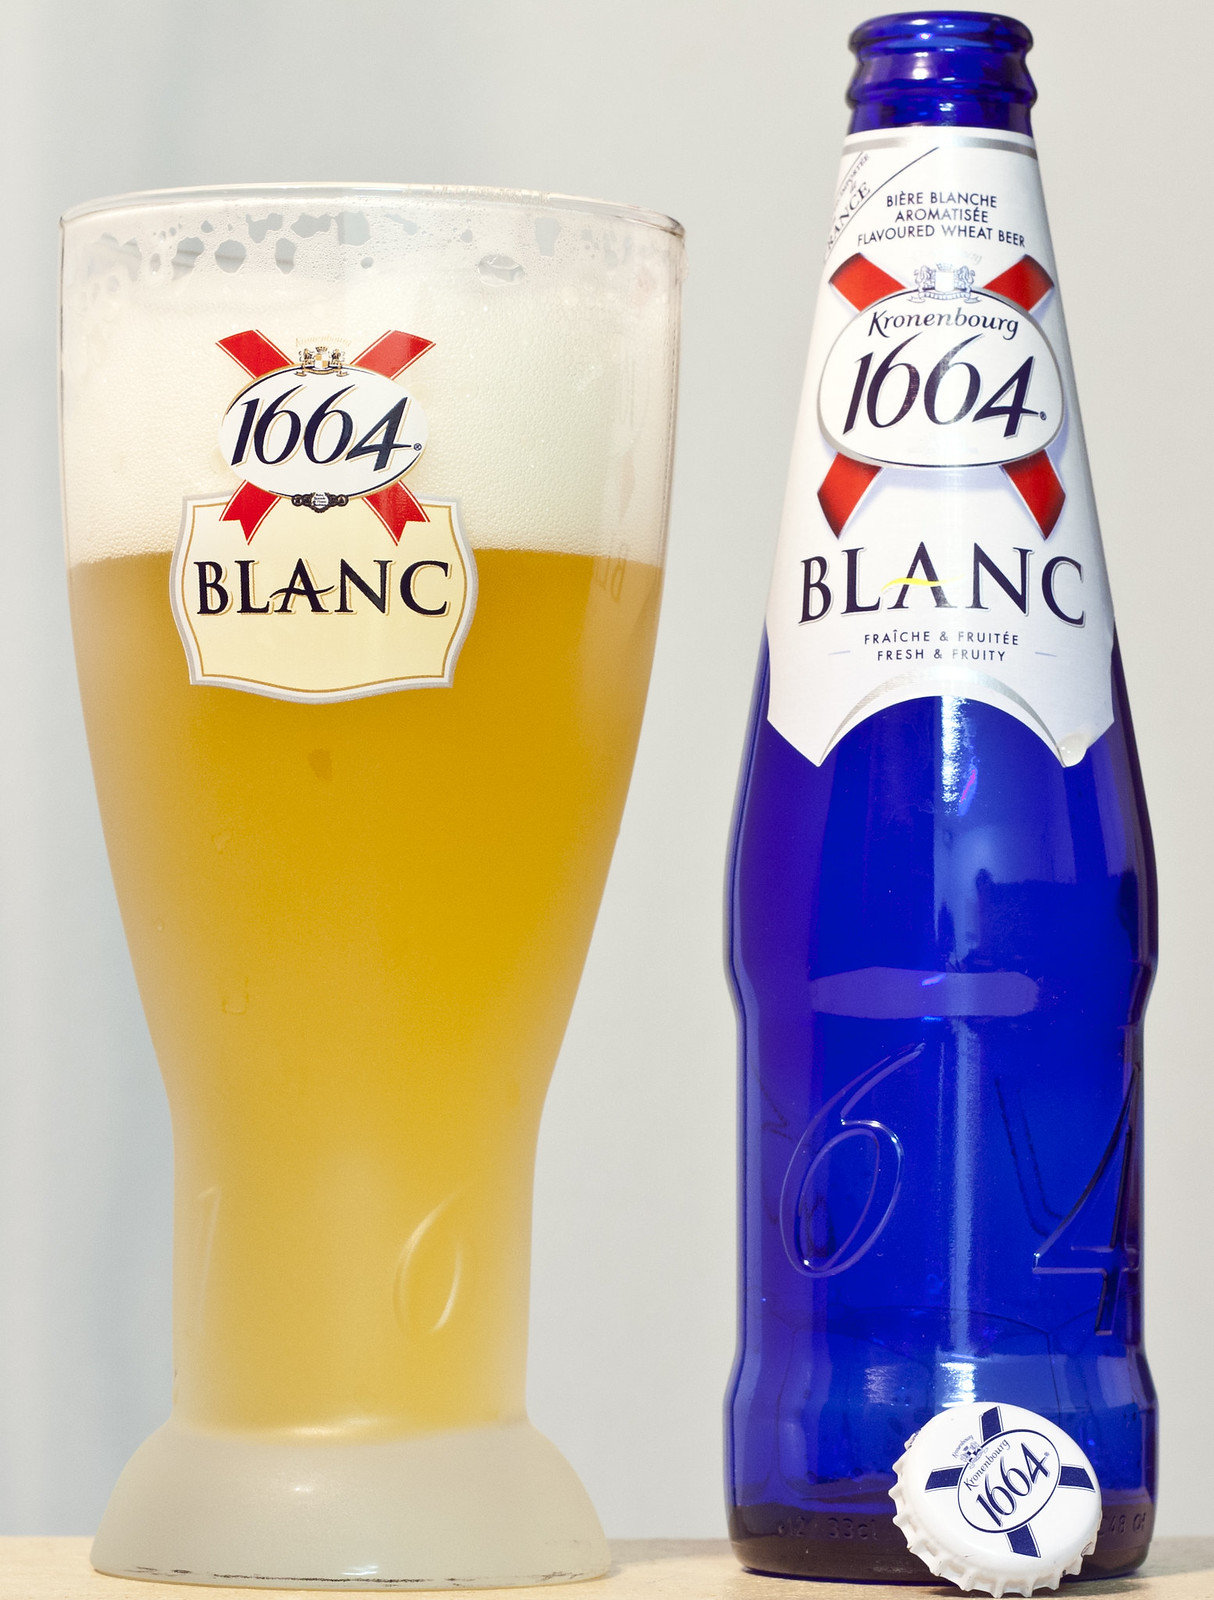 From the archives: Kronenbourg 1664 Blanc